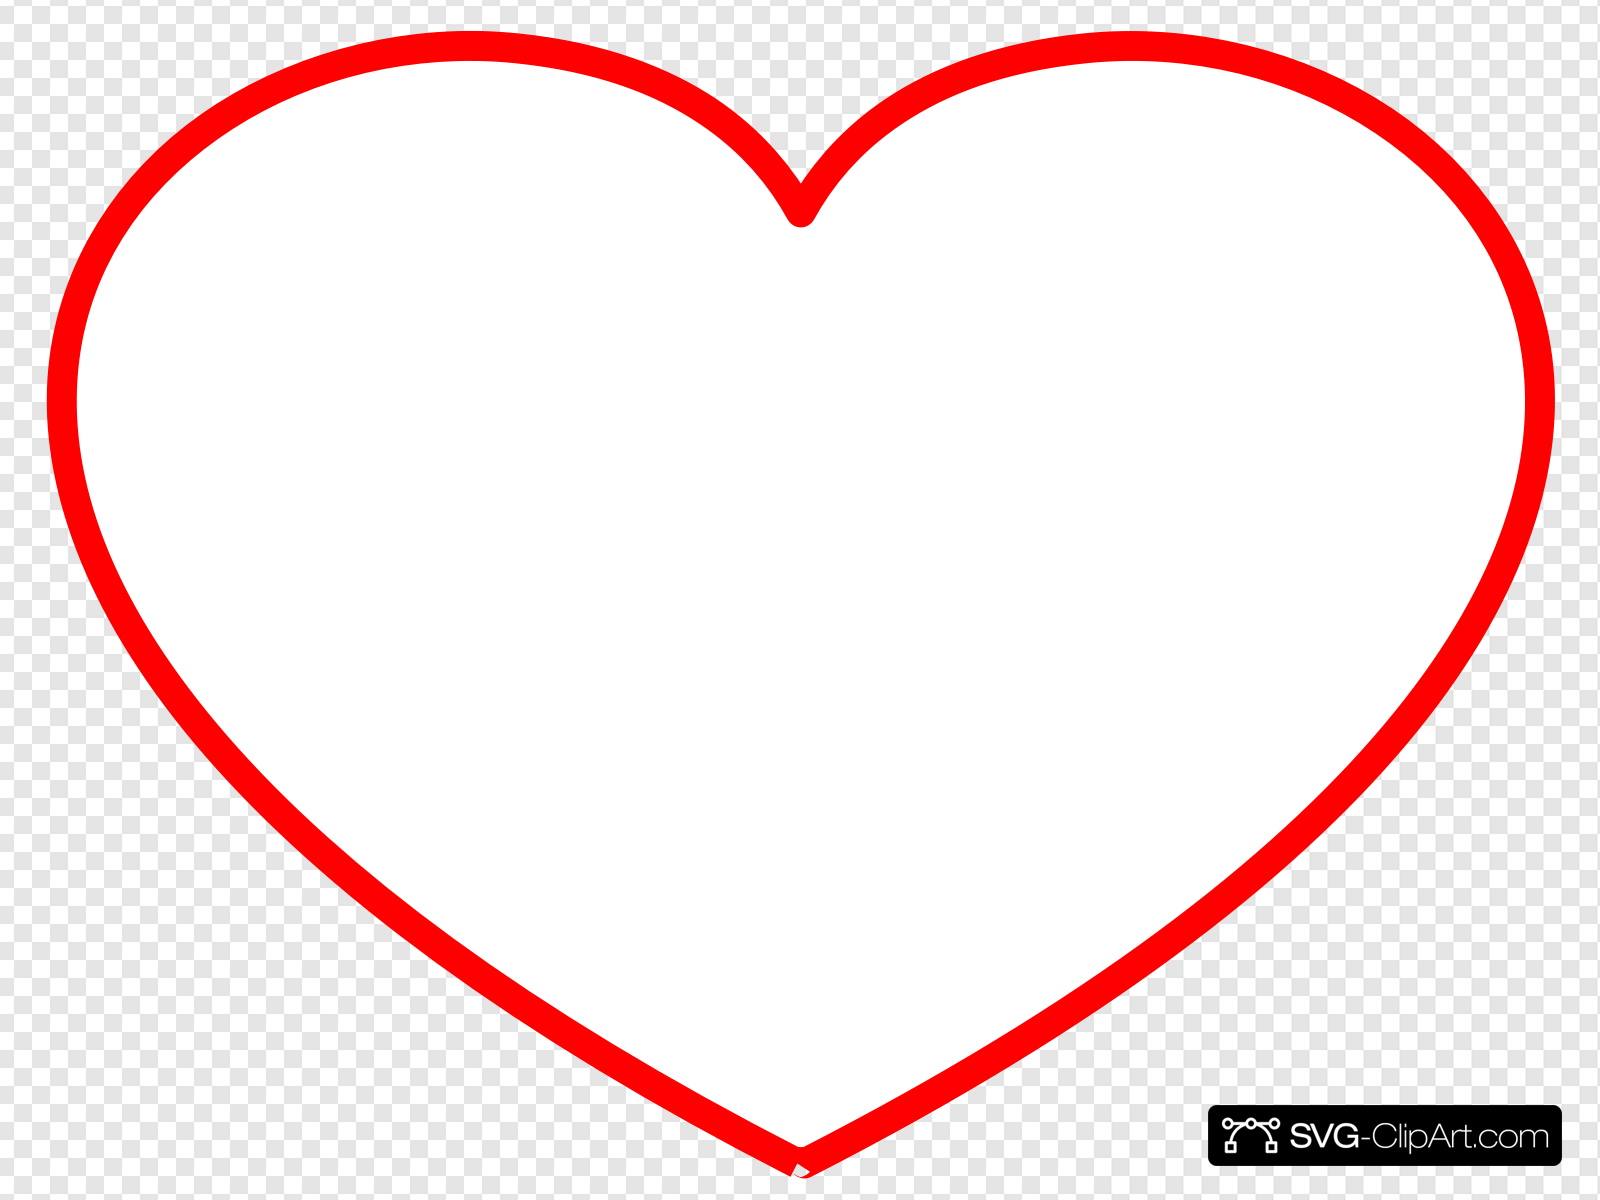 Clipart heart frame png freeuse Heart Frame New Red Clip art, Icon and SVG - SVG Clipart png freeuse